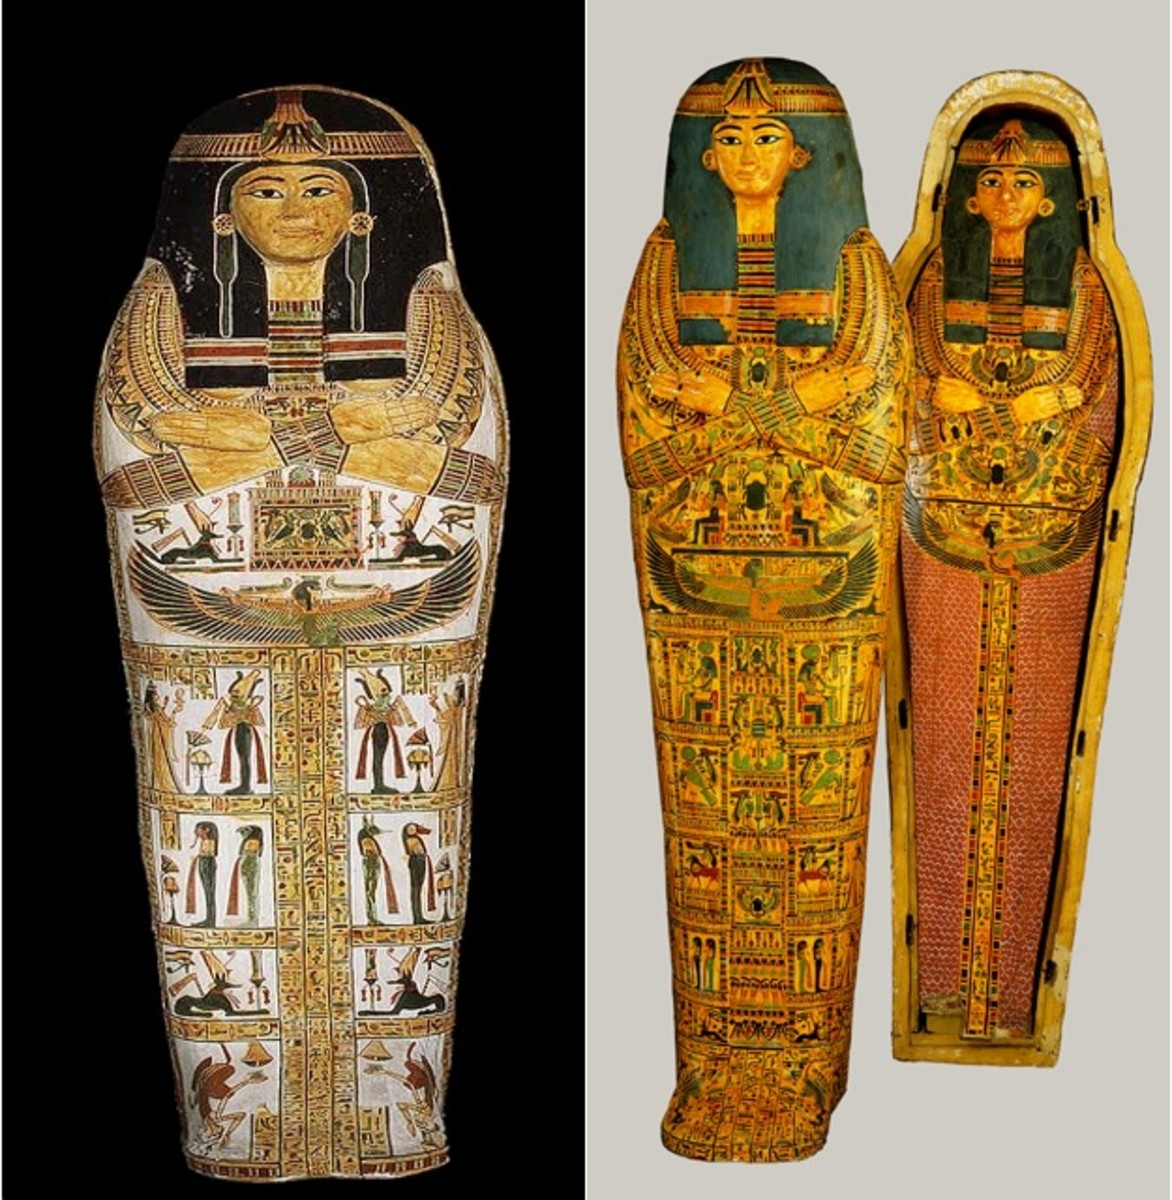 Henettawy was a Third Intermediate Period Priestess. Her burial coffins display her socioeconomic status and transition in death. The outer coffin is the embodiment of male characteristics while the inner coffin is the feminine characteristics.